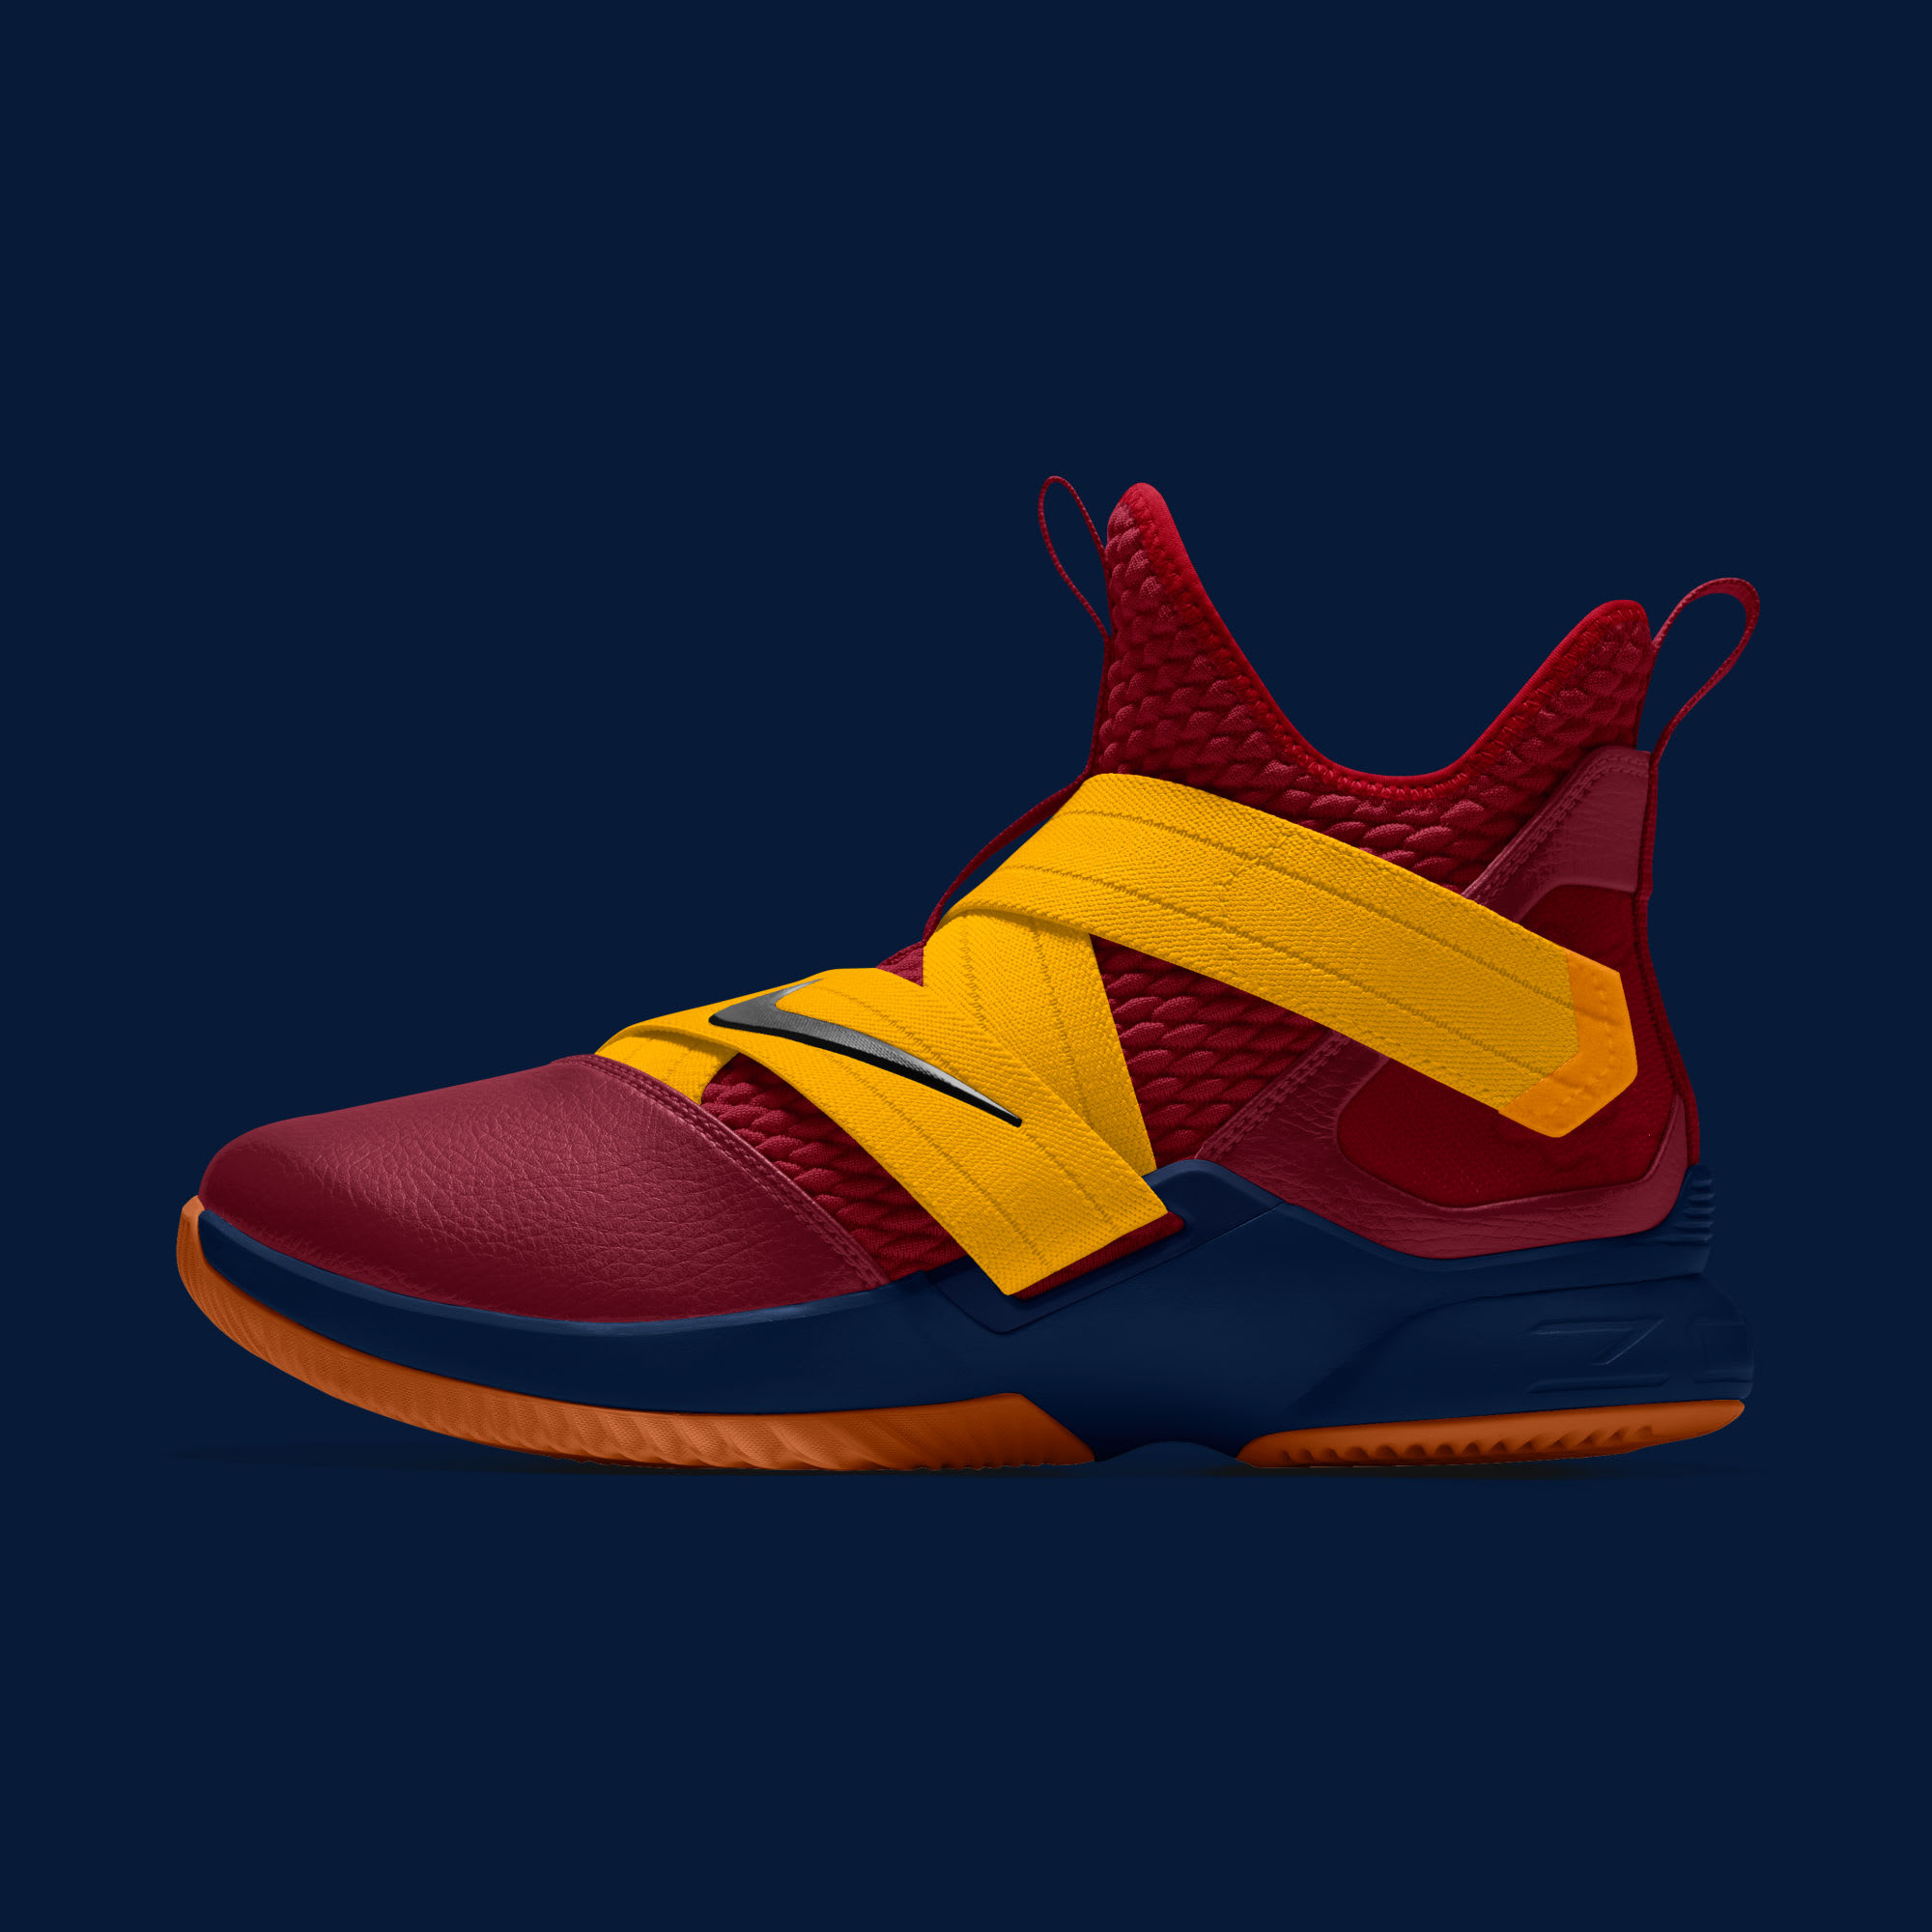 sneakers for cheap 8d025 53b22 NIKEiD LeBron Soldier 12 XII Release Date - Premier Kicks